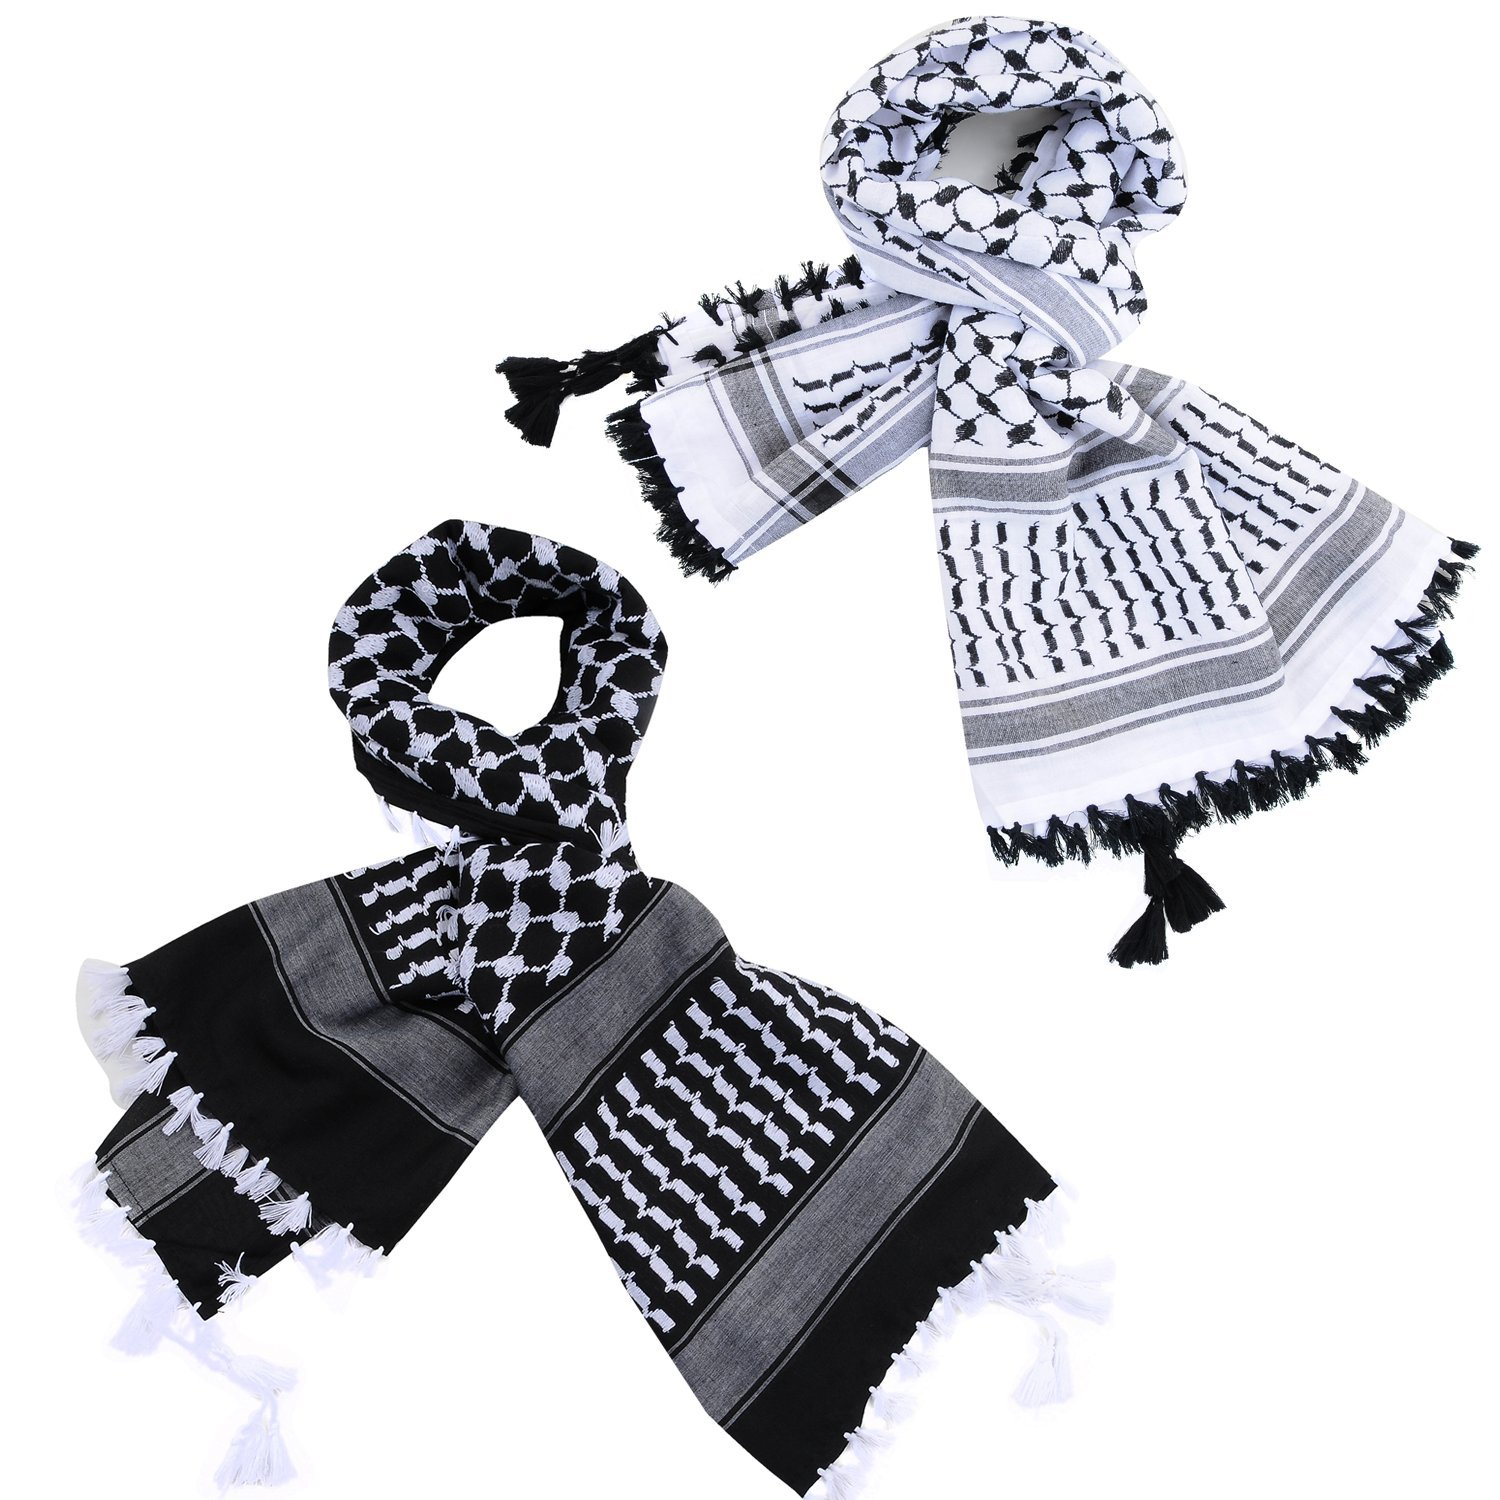 Micoop Large Size Premium Shemagh Scarf Arab Military Tactical Desert Scarf Wrap with Fine Tassels, 2-Pack (White Black & Black White) by Micoop (Image #1)